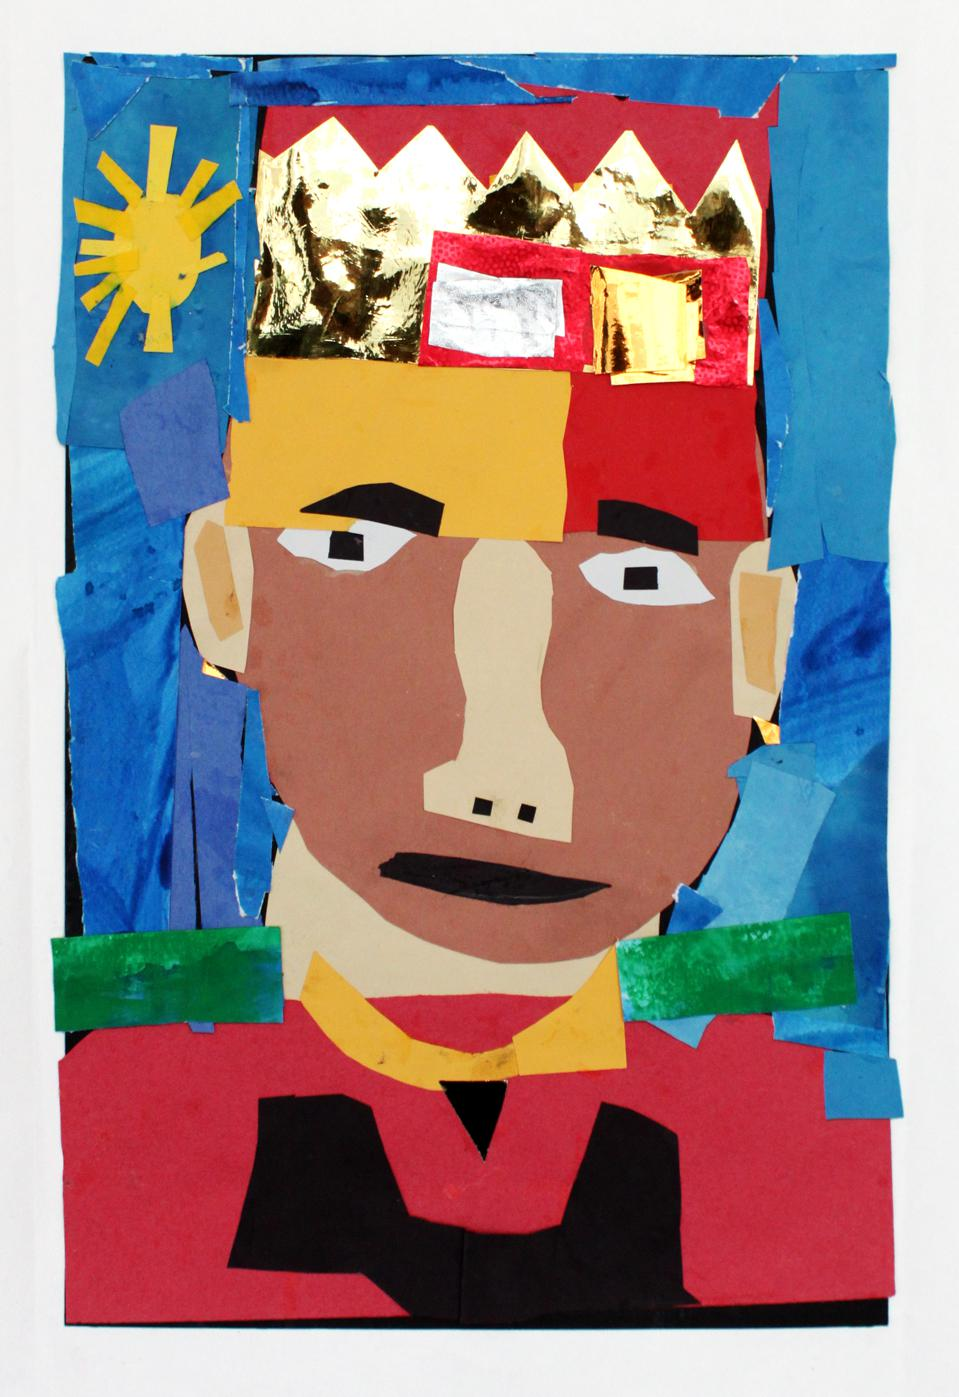 Art created by one of the students at PS 200, to be shared in the virtual exhibition